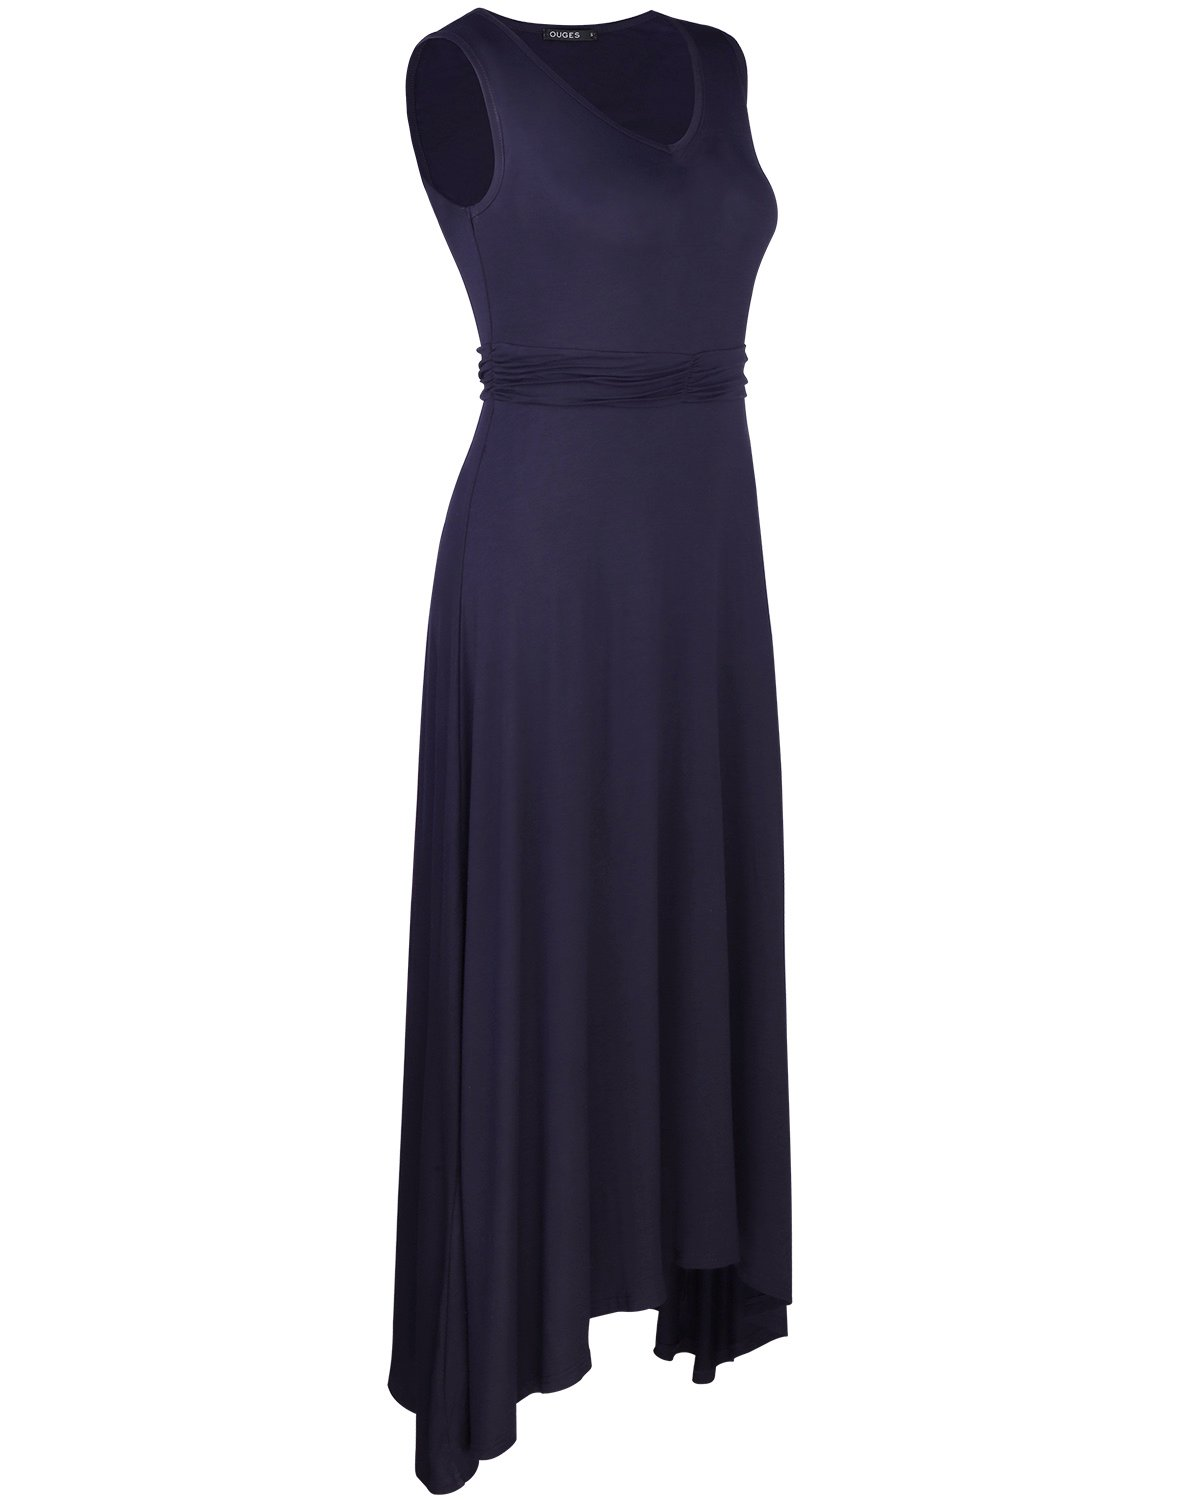 OUGES Women's V Neck Sleeveless Summer Casual Long Maxi Dresses(Navy,S) ¡­ by OUGES (Image #3)